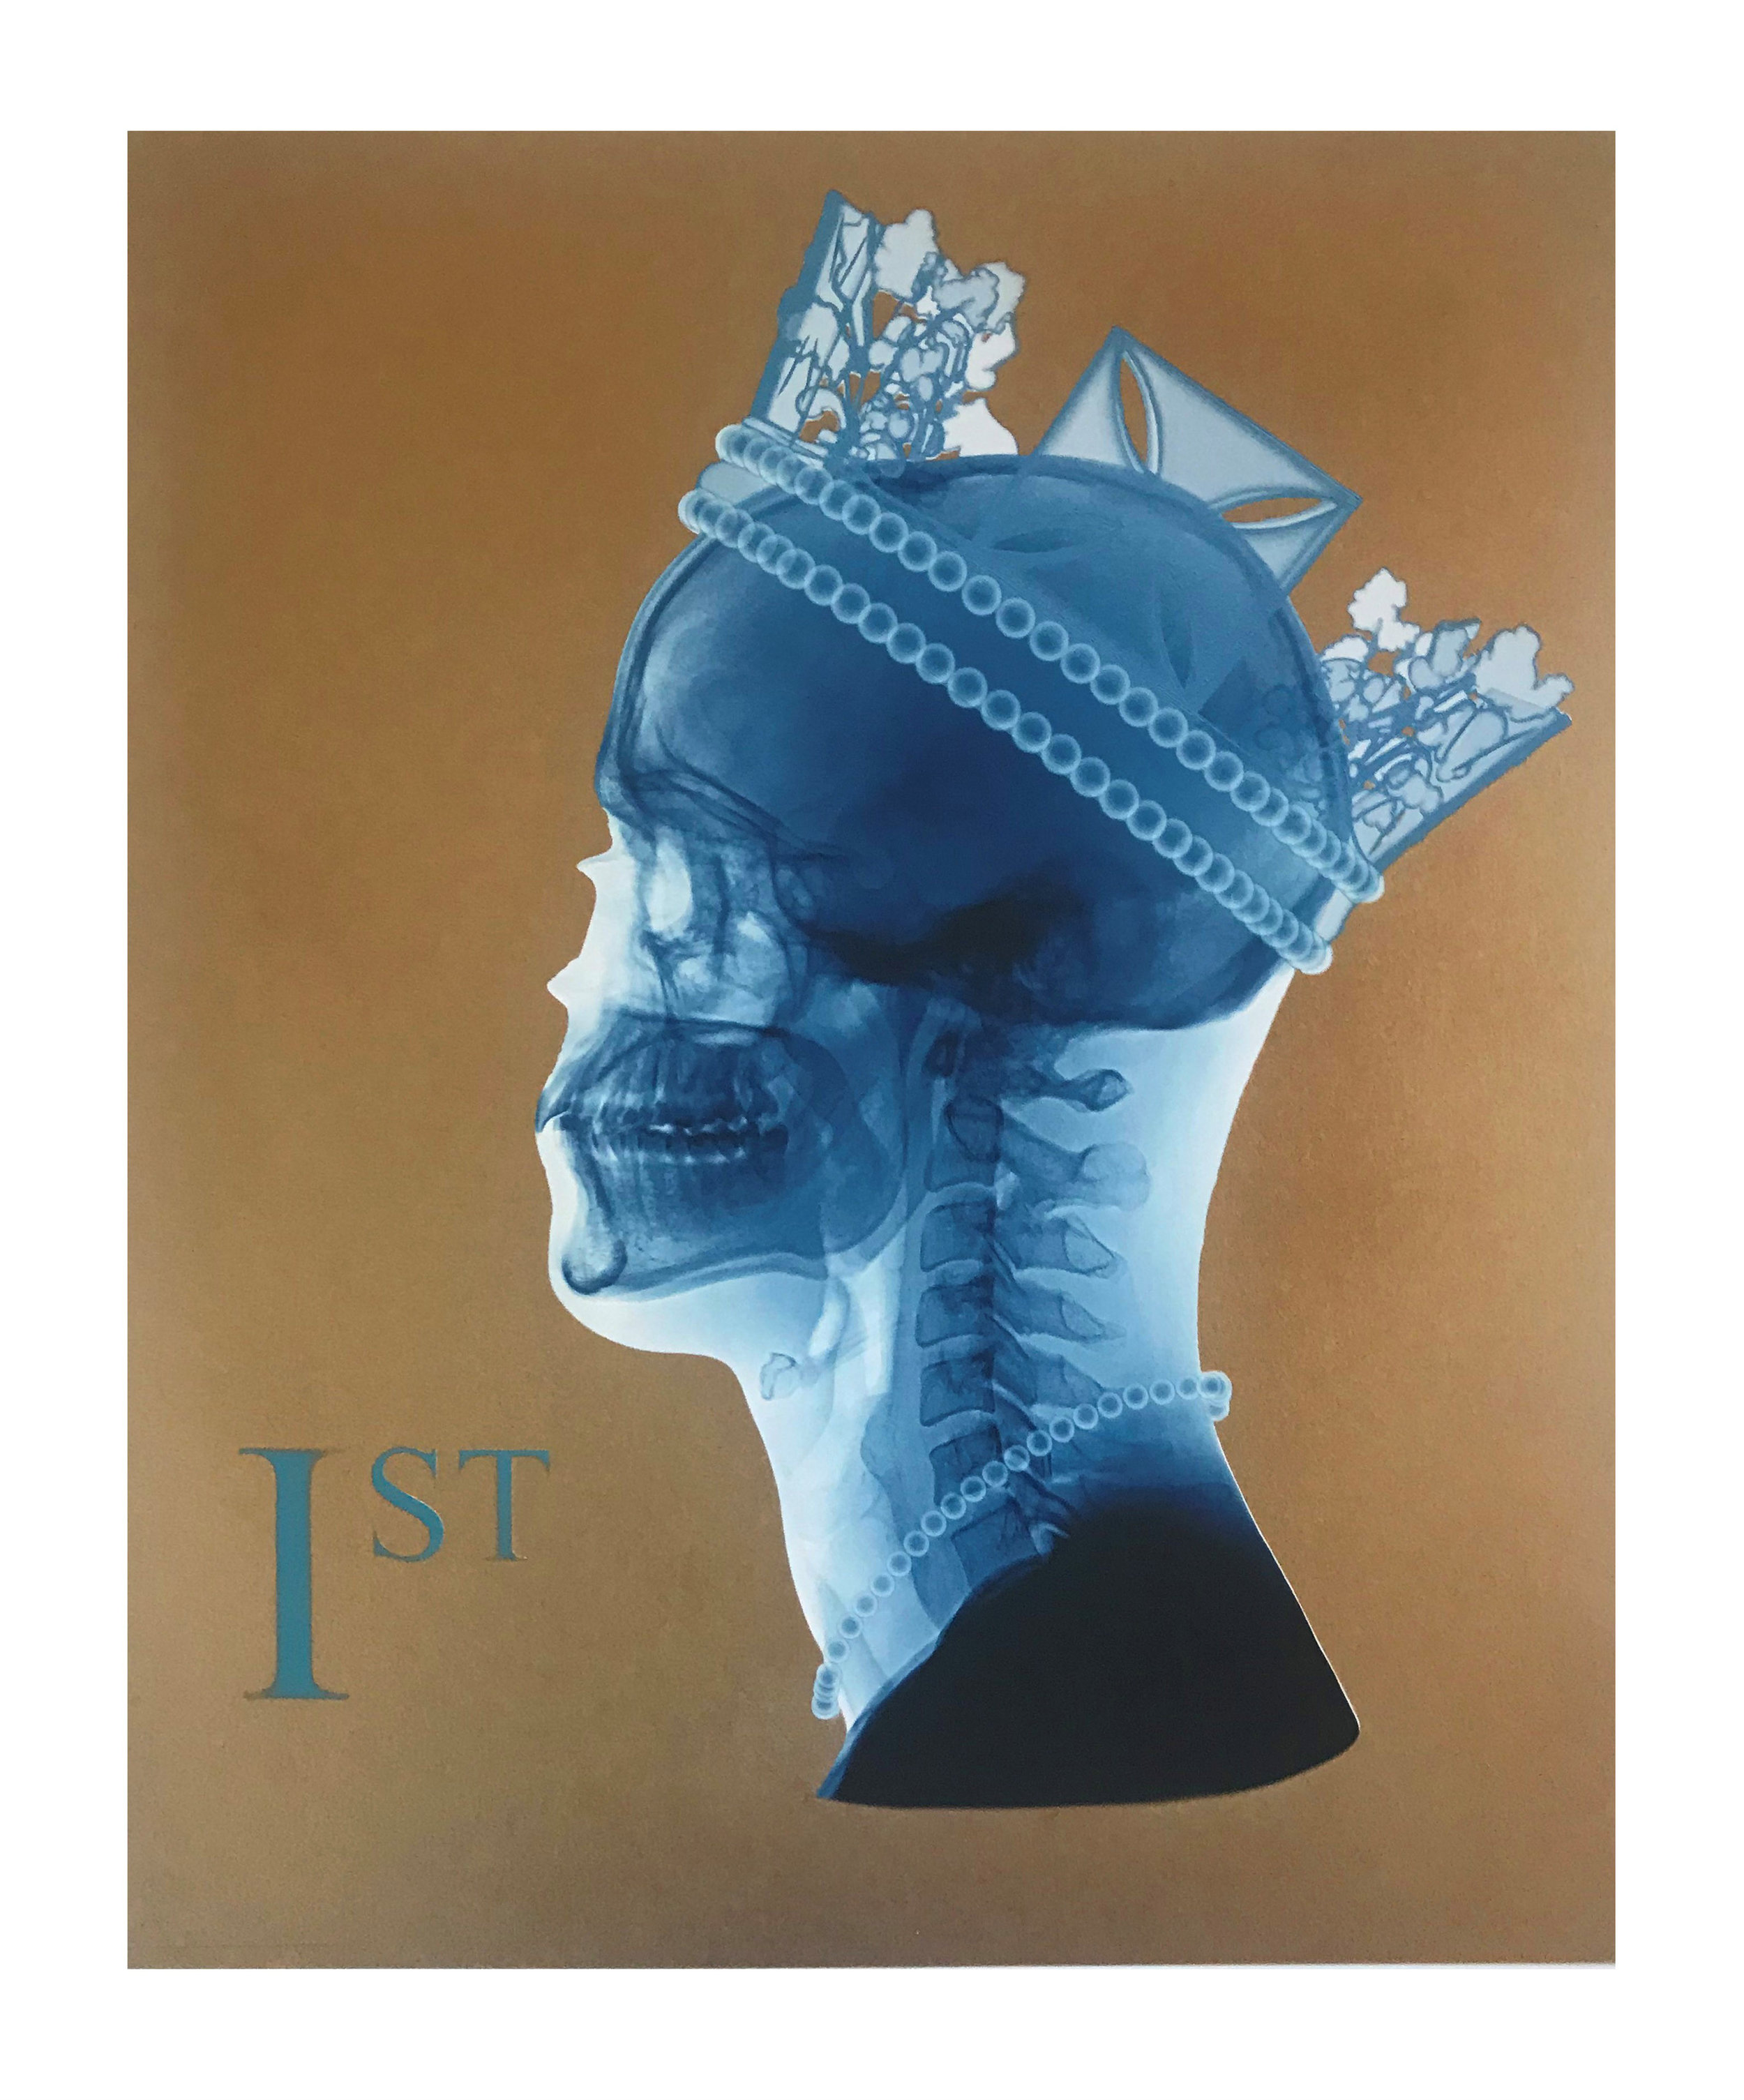 First Lady, 2018 | Giclee print with spray paint edition of 25 | 48 x 42 cm | £395